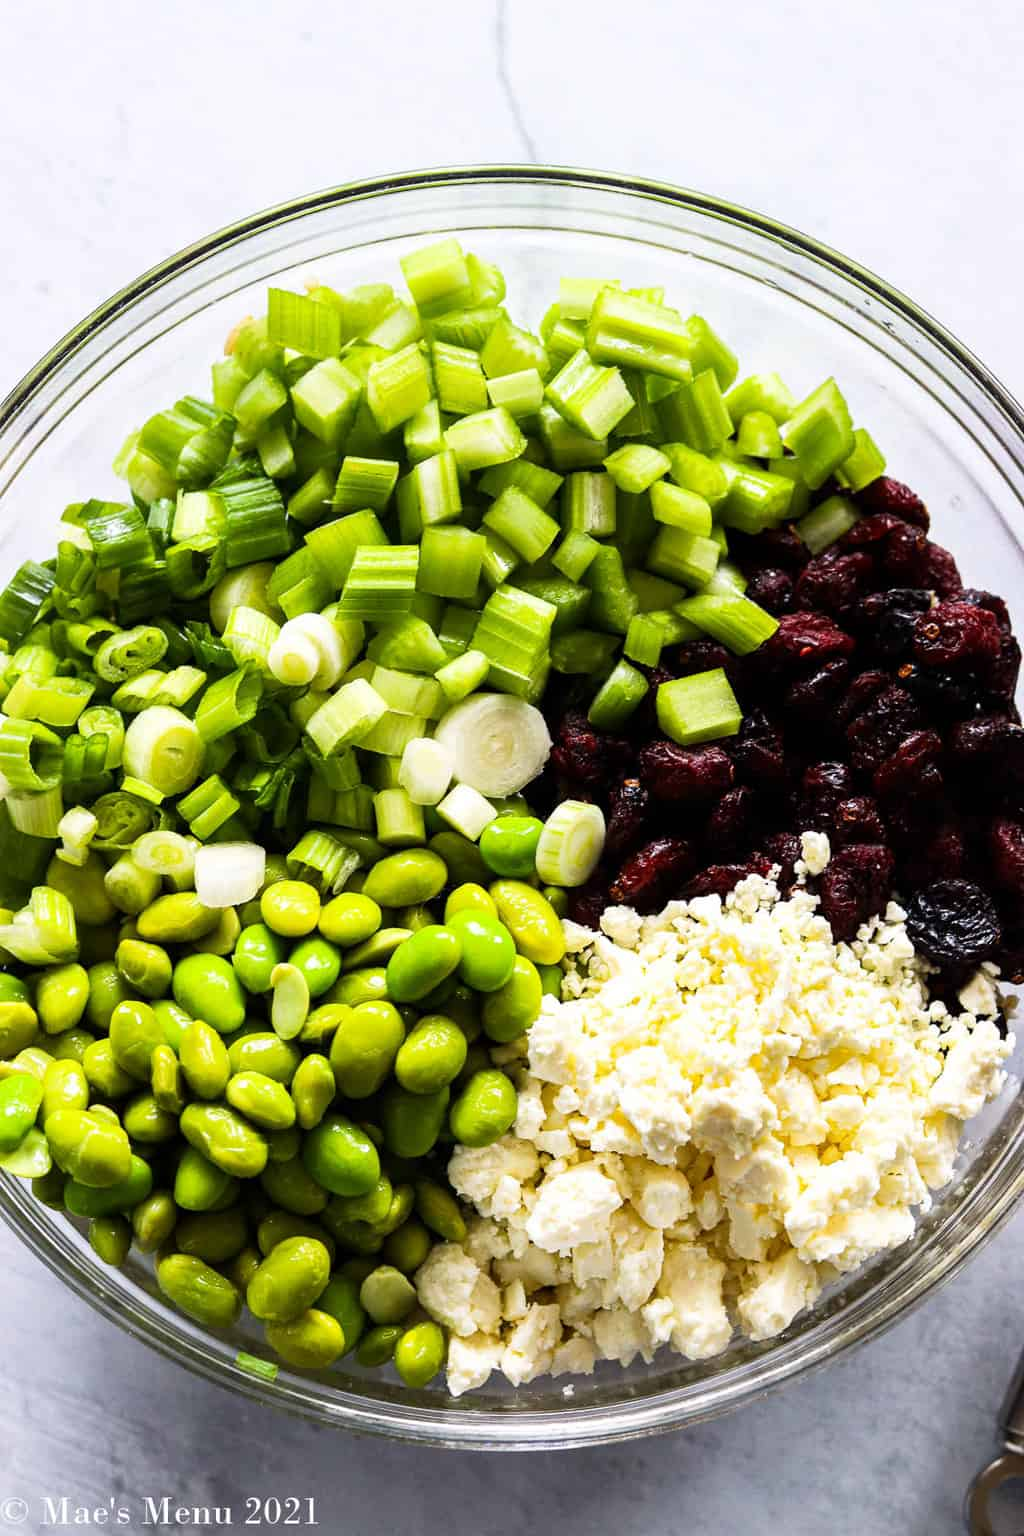 An overhead shot of a glass mixing bowl with celery, green onions, edamame, feta cheese, and cranberries